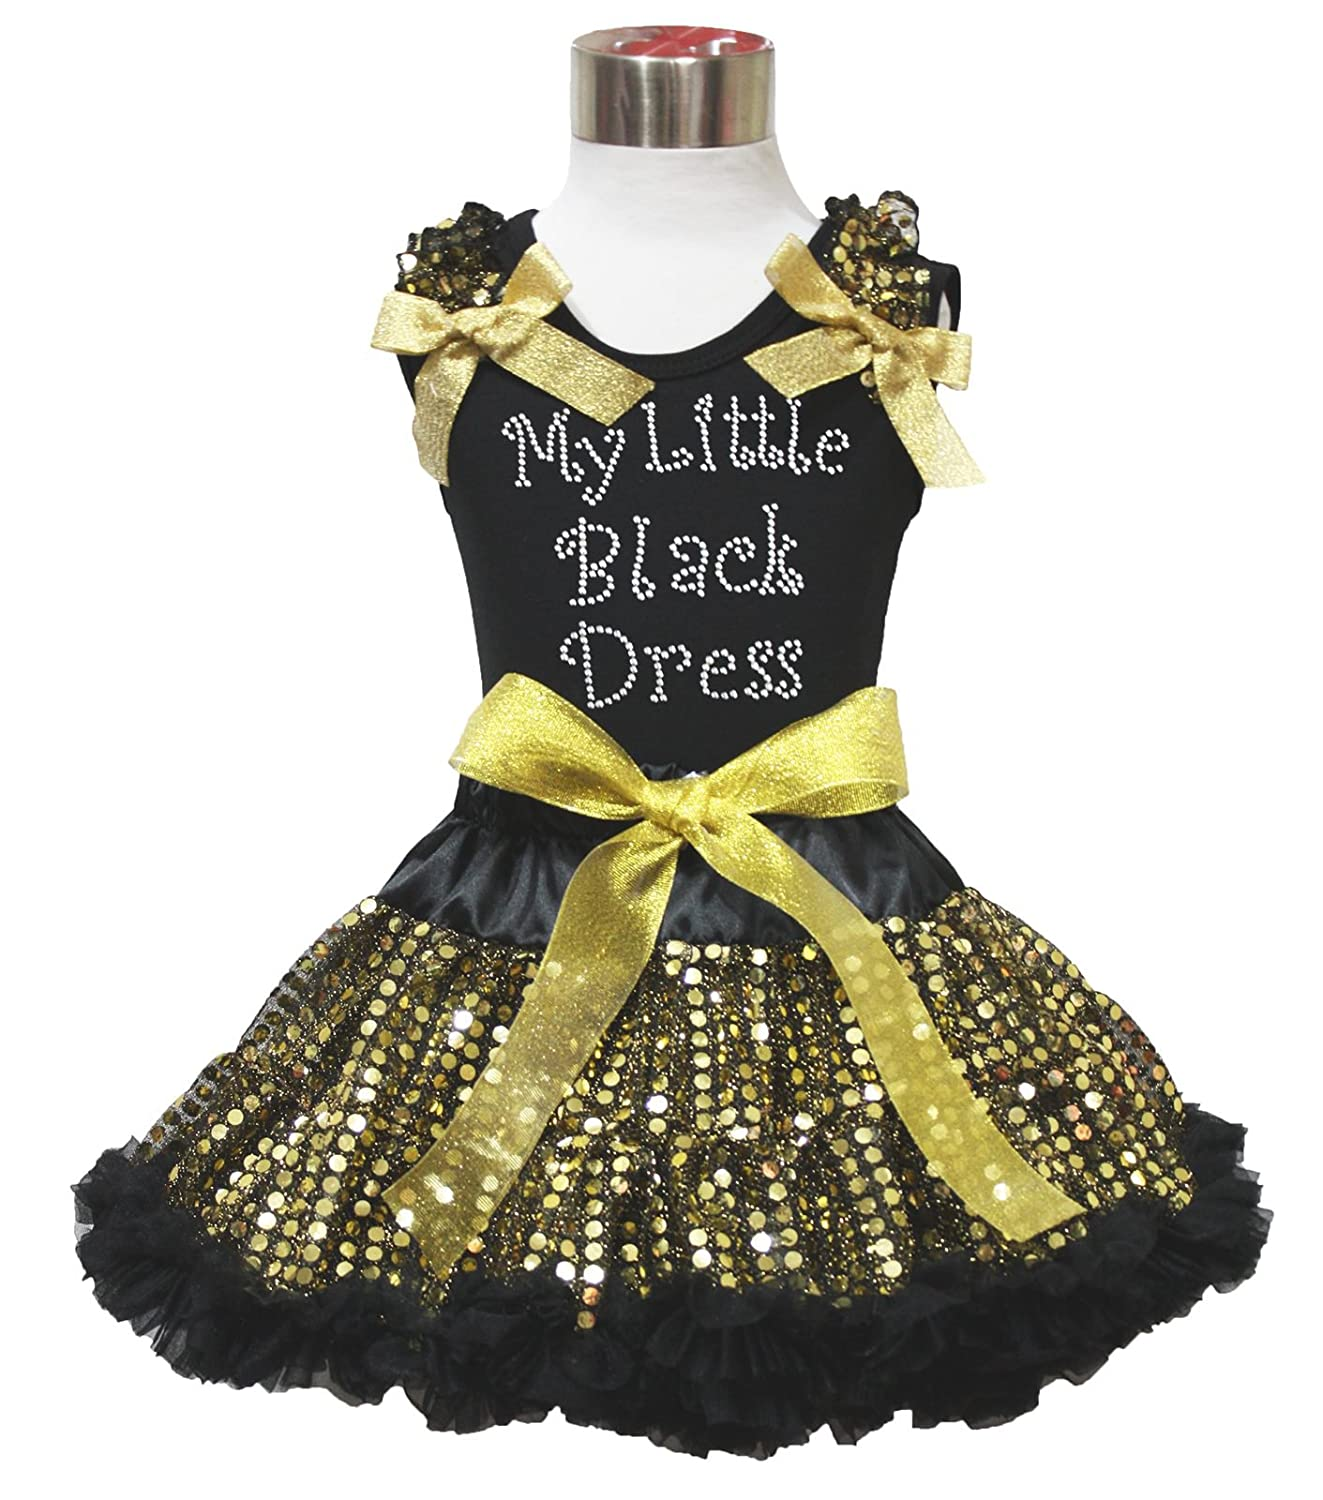 e5720b0d9a482 Amazon.com: Rhinestone My Little Black Princess Shirt Bling Gold Sequin  Skirt Outfit 1-8y: Clothing